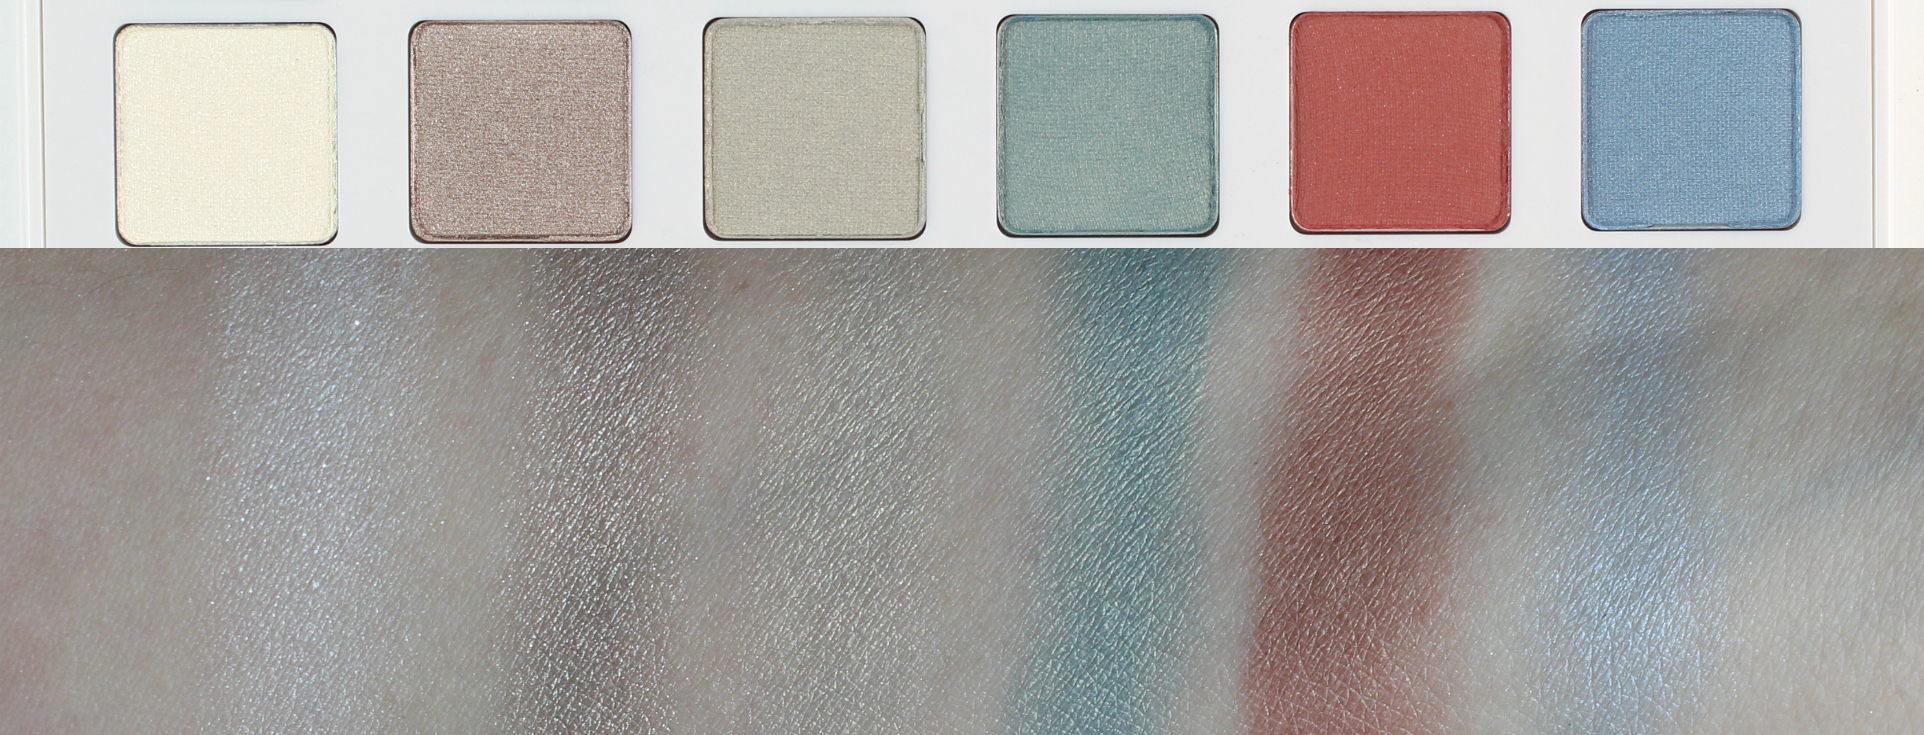 3-Sephora + Pantone Color of the Year 2016 Modern Watercolors Eye Palette Swatches 2